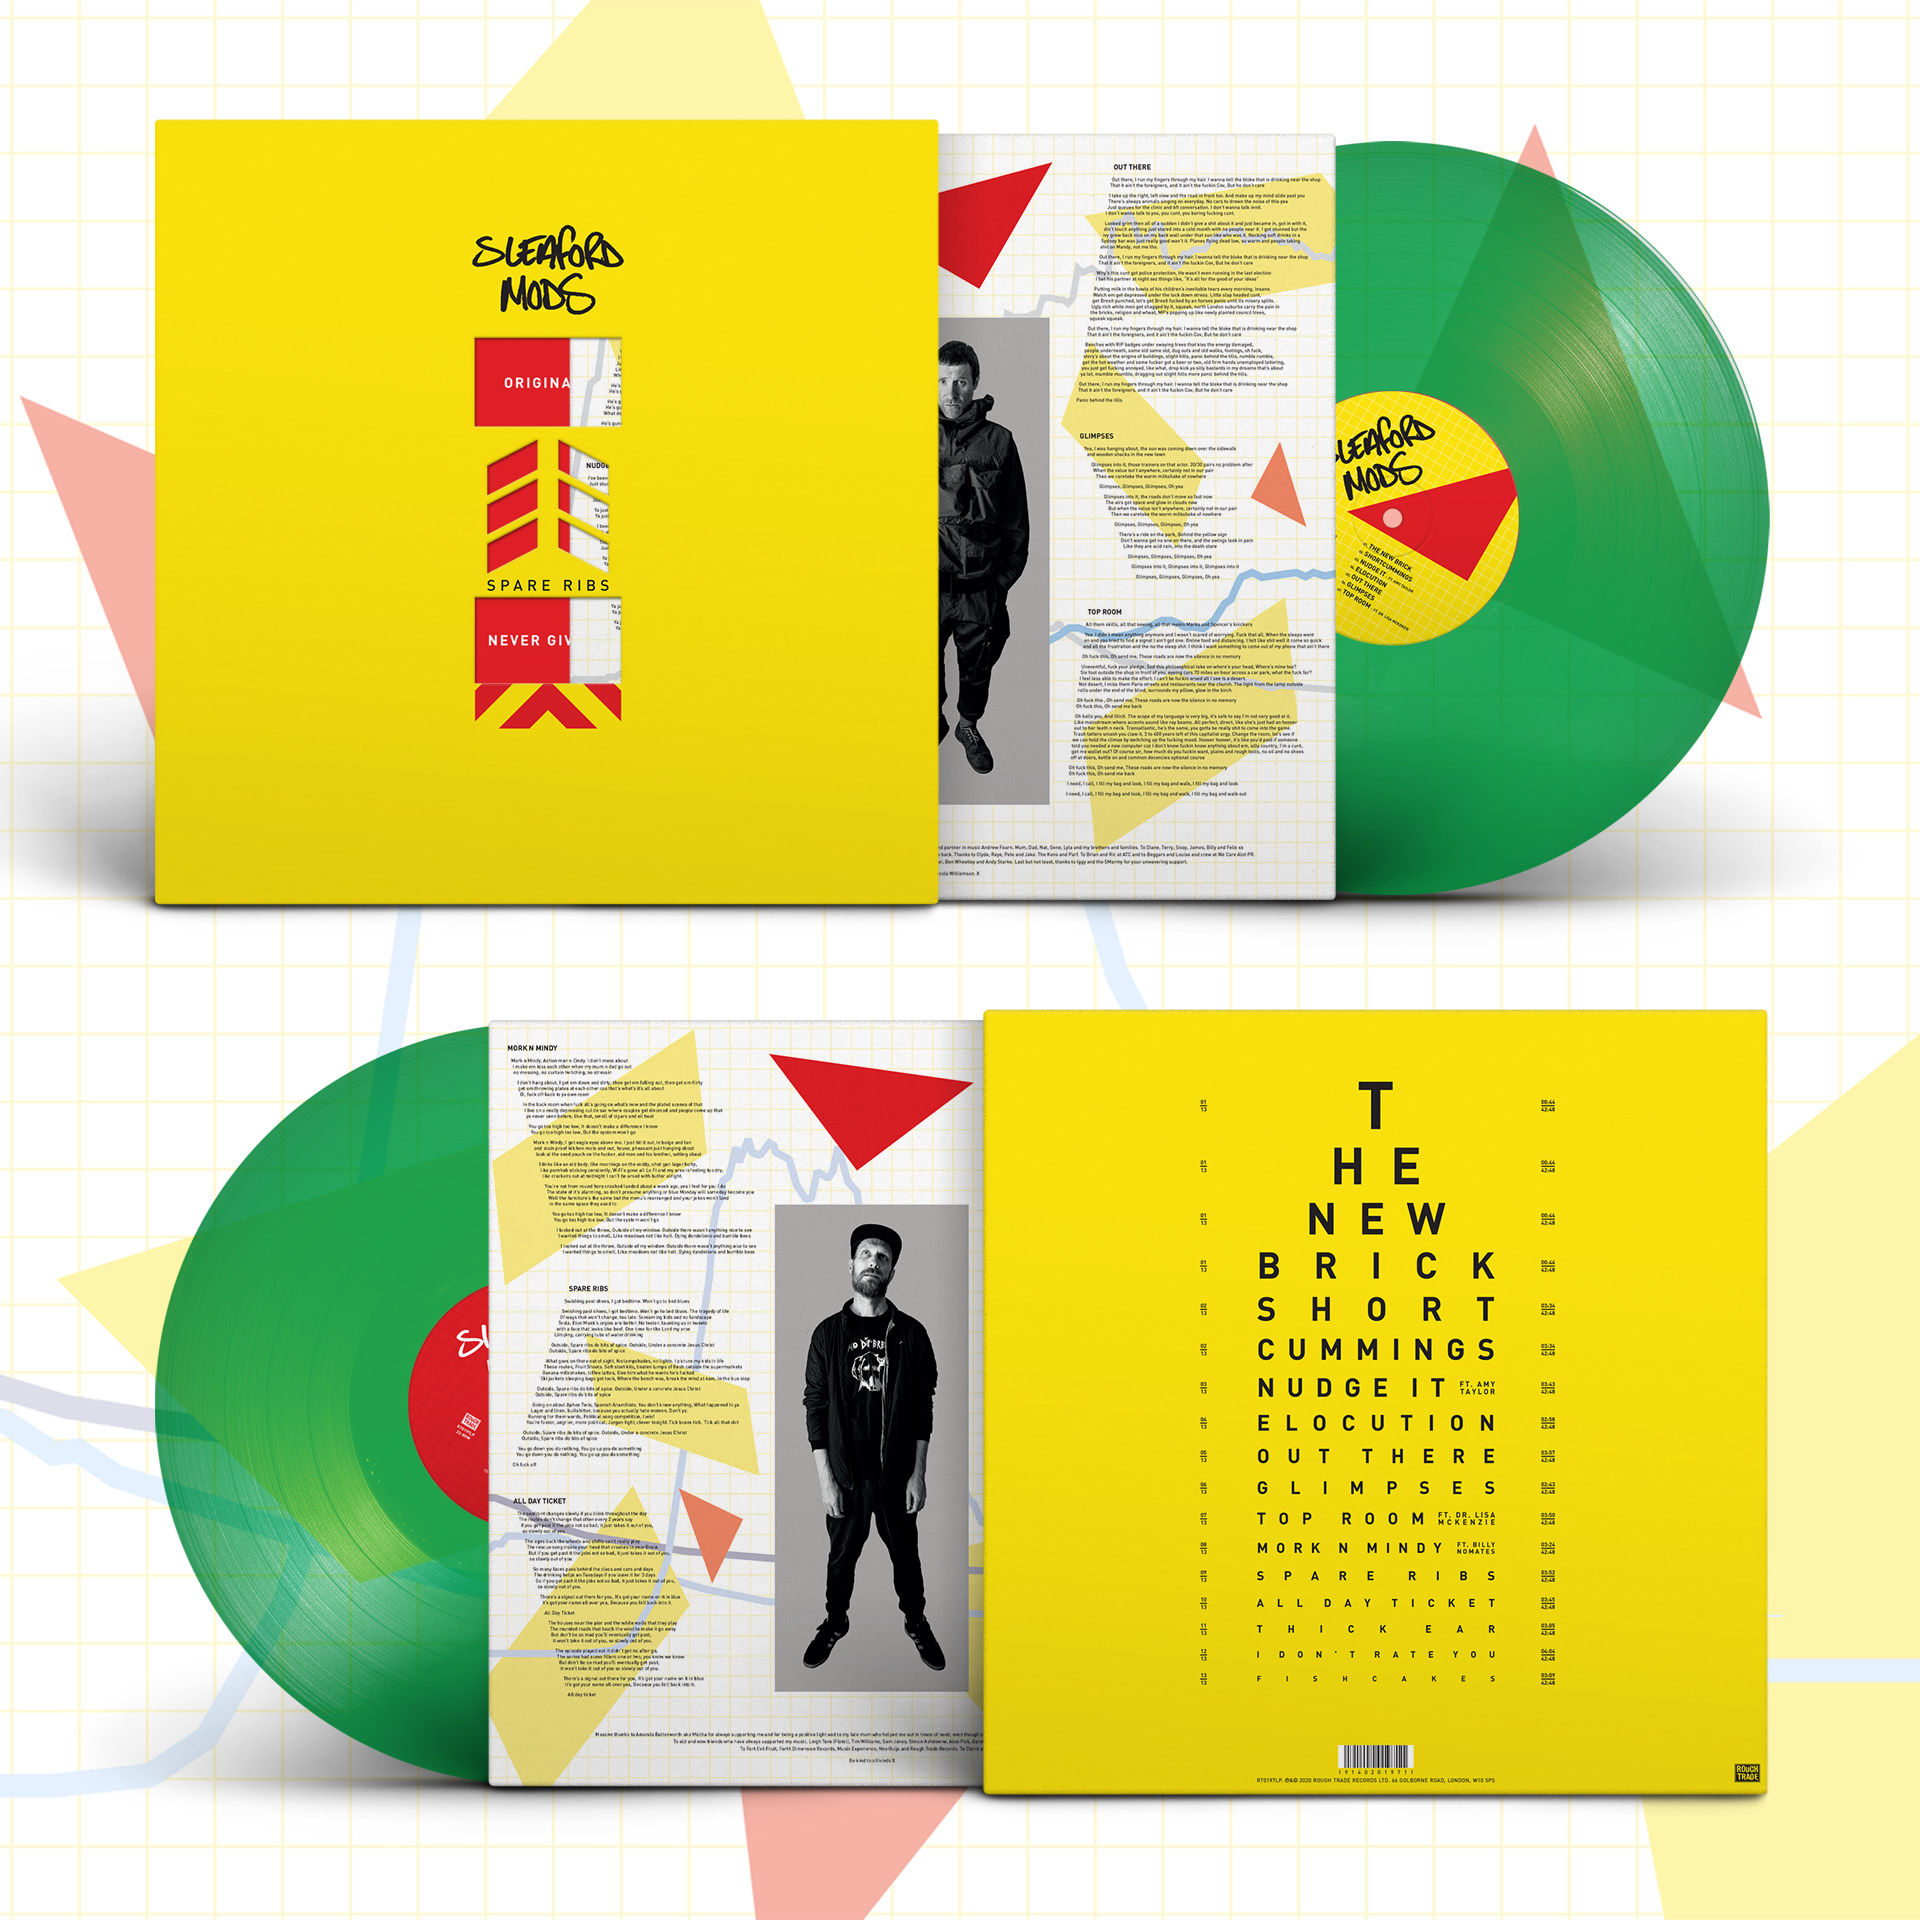 Sleaford Mods - Spare Ribs Limited Edition Green Vinyl